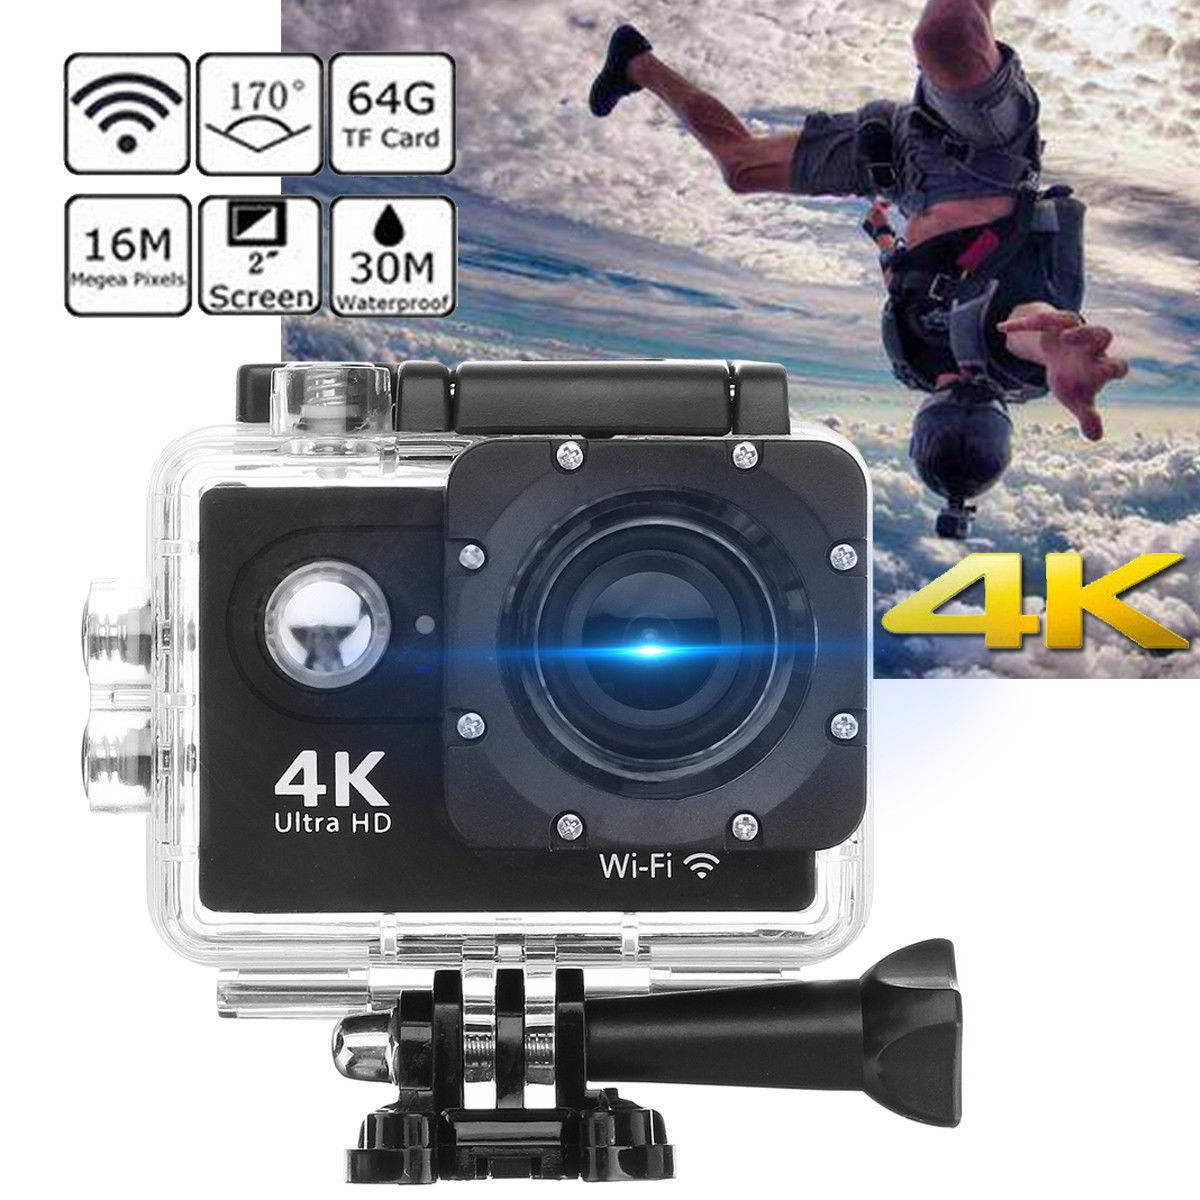 EKEN H9 Action Camera wifi Ultra HD Mini Cam 4K/30FPS 1080p/60fps  720P/120FPS underwater Waterproof Video Sports Camera (WHITE)